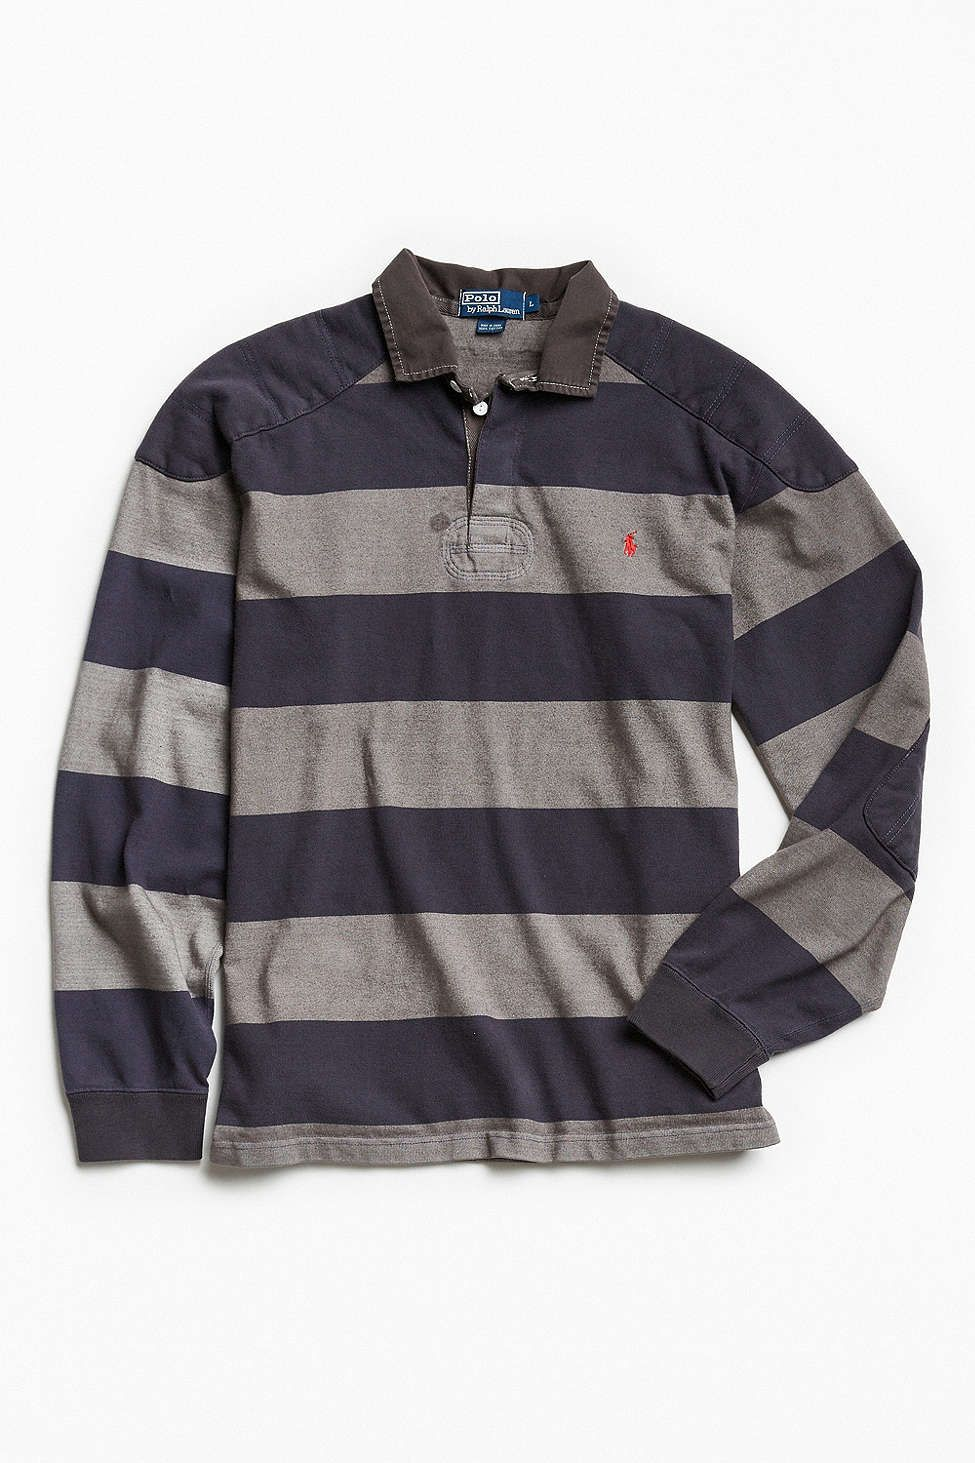 1d5b435a307 Vintage Polo By Ralph Lauren Overdyed Rugby Shirt | CASUAL MEN'S ...